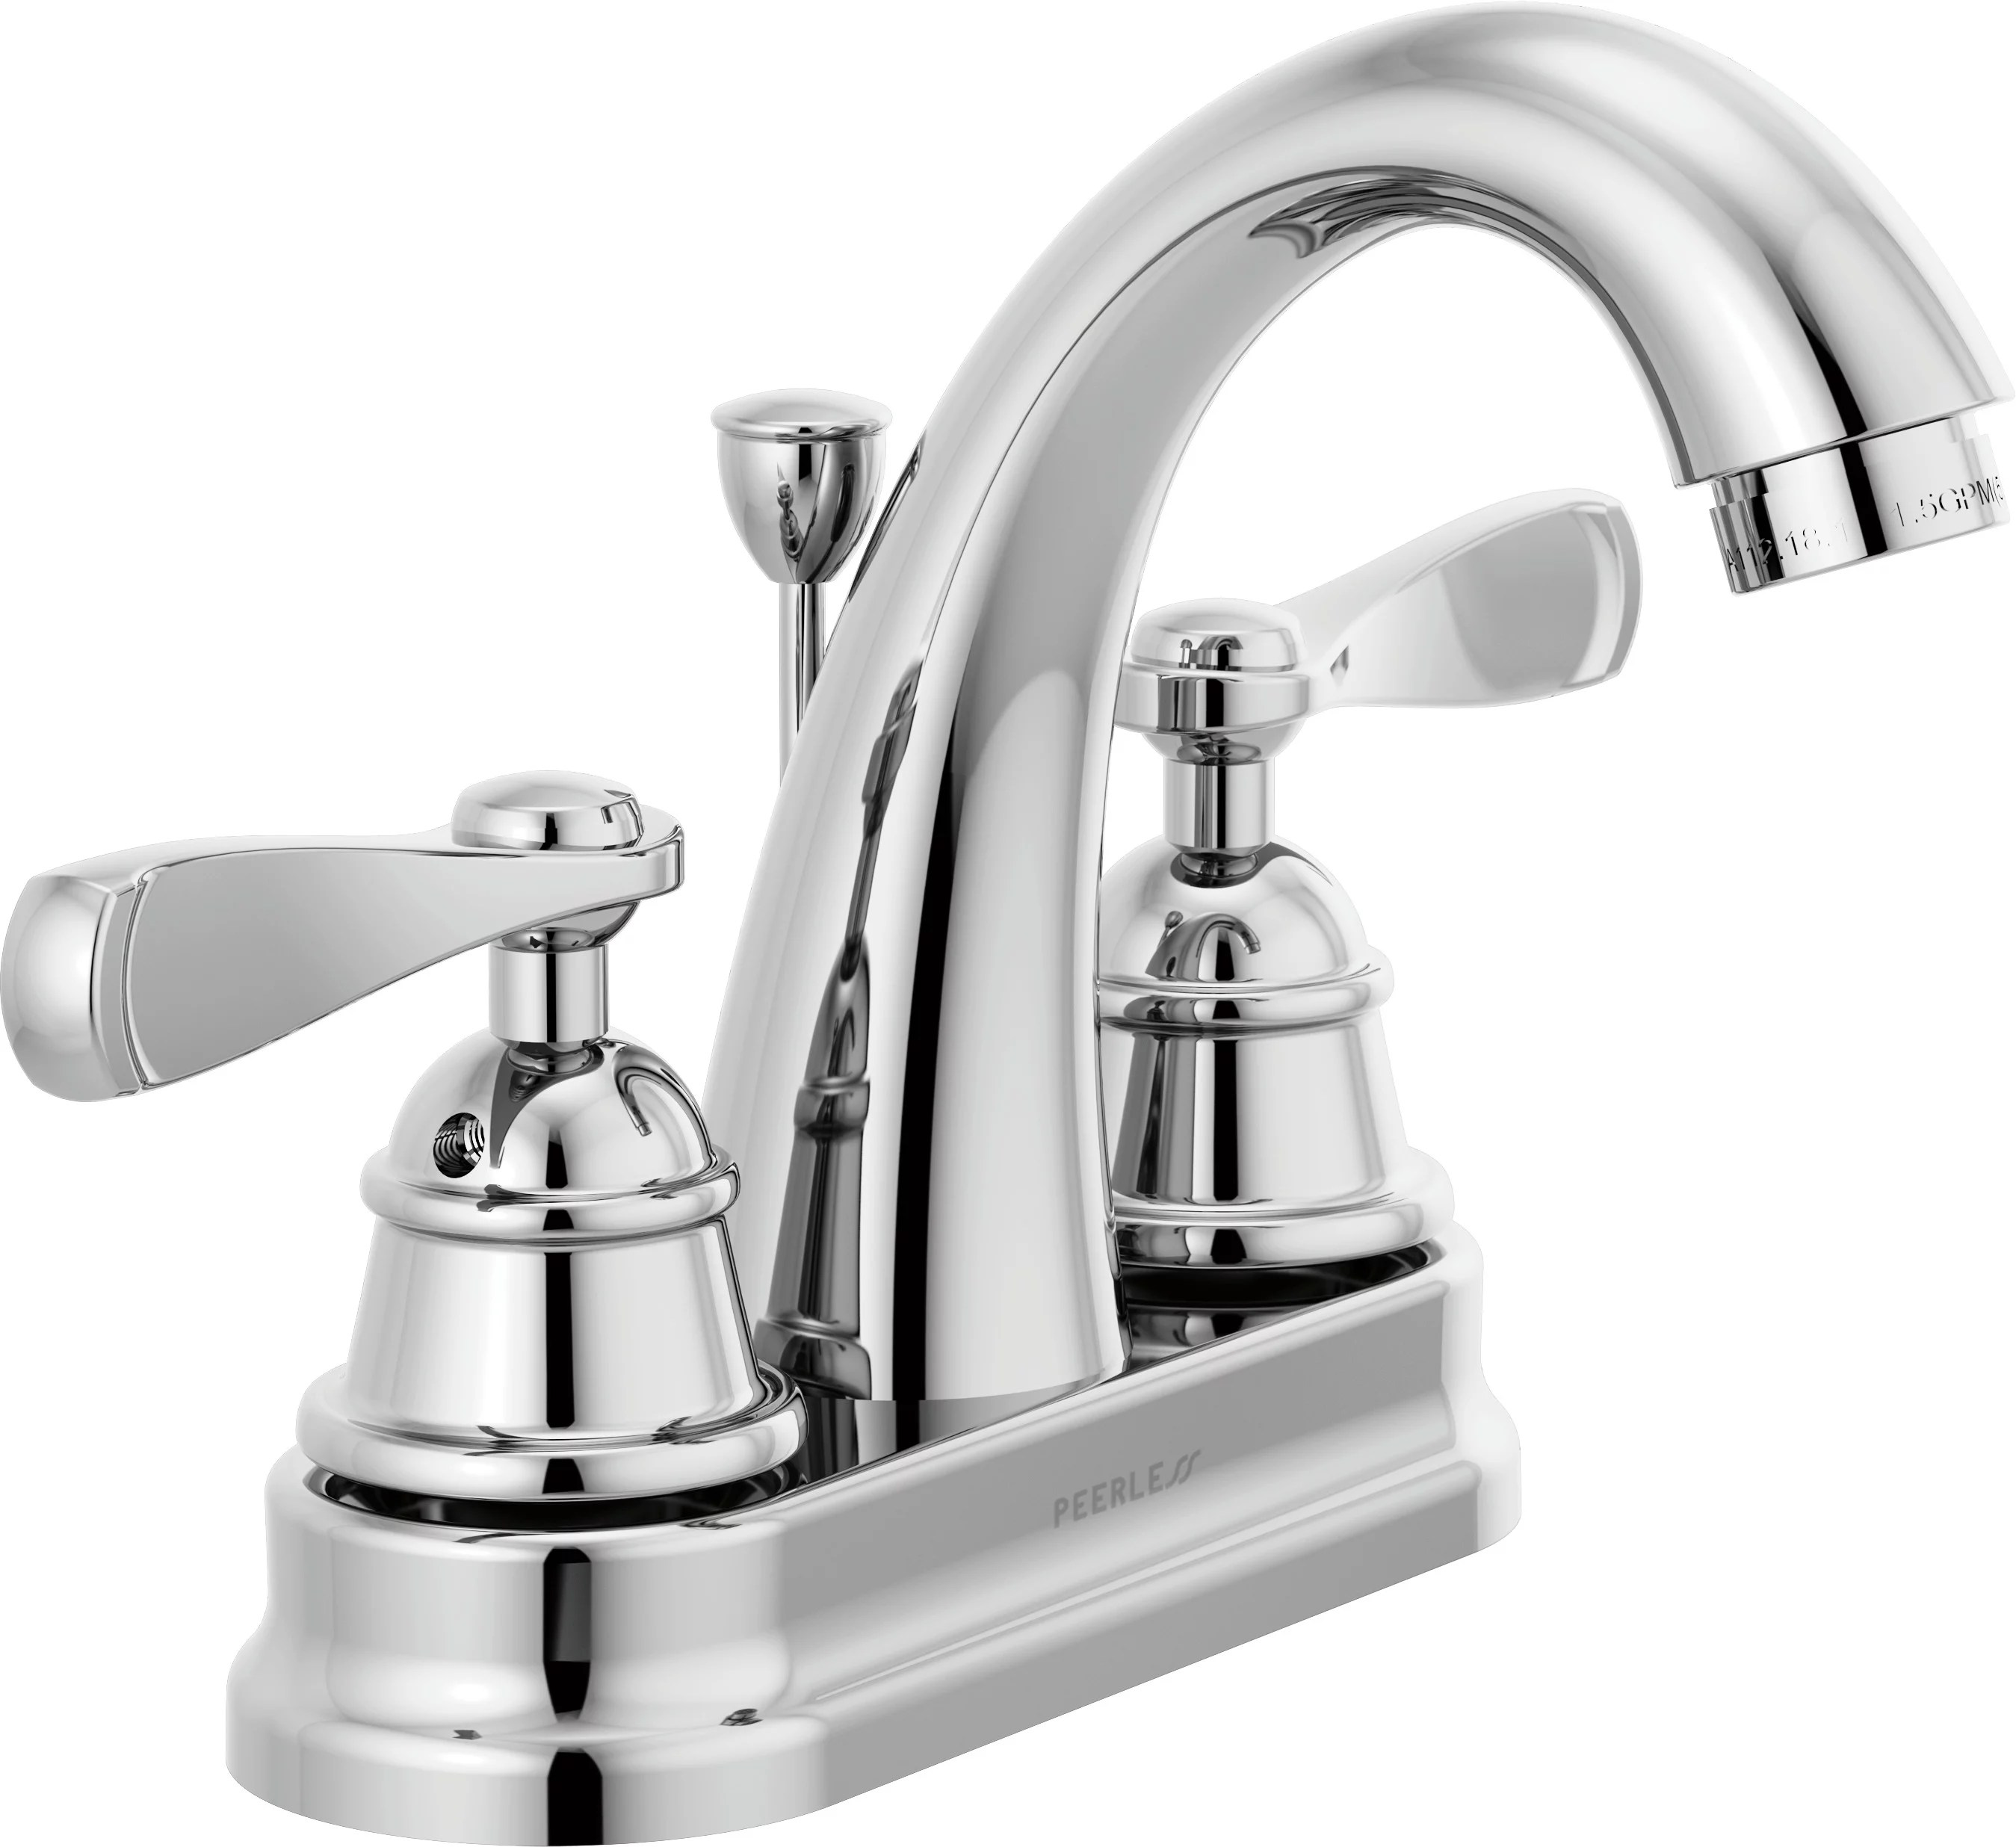 peerless centerset two handle bathroom faucet in chrome